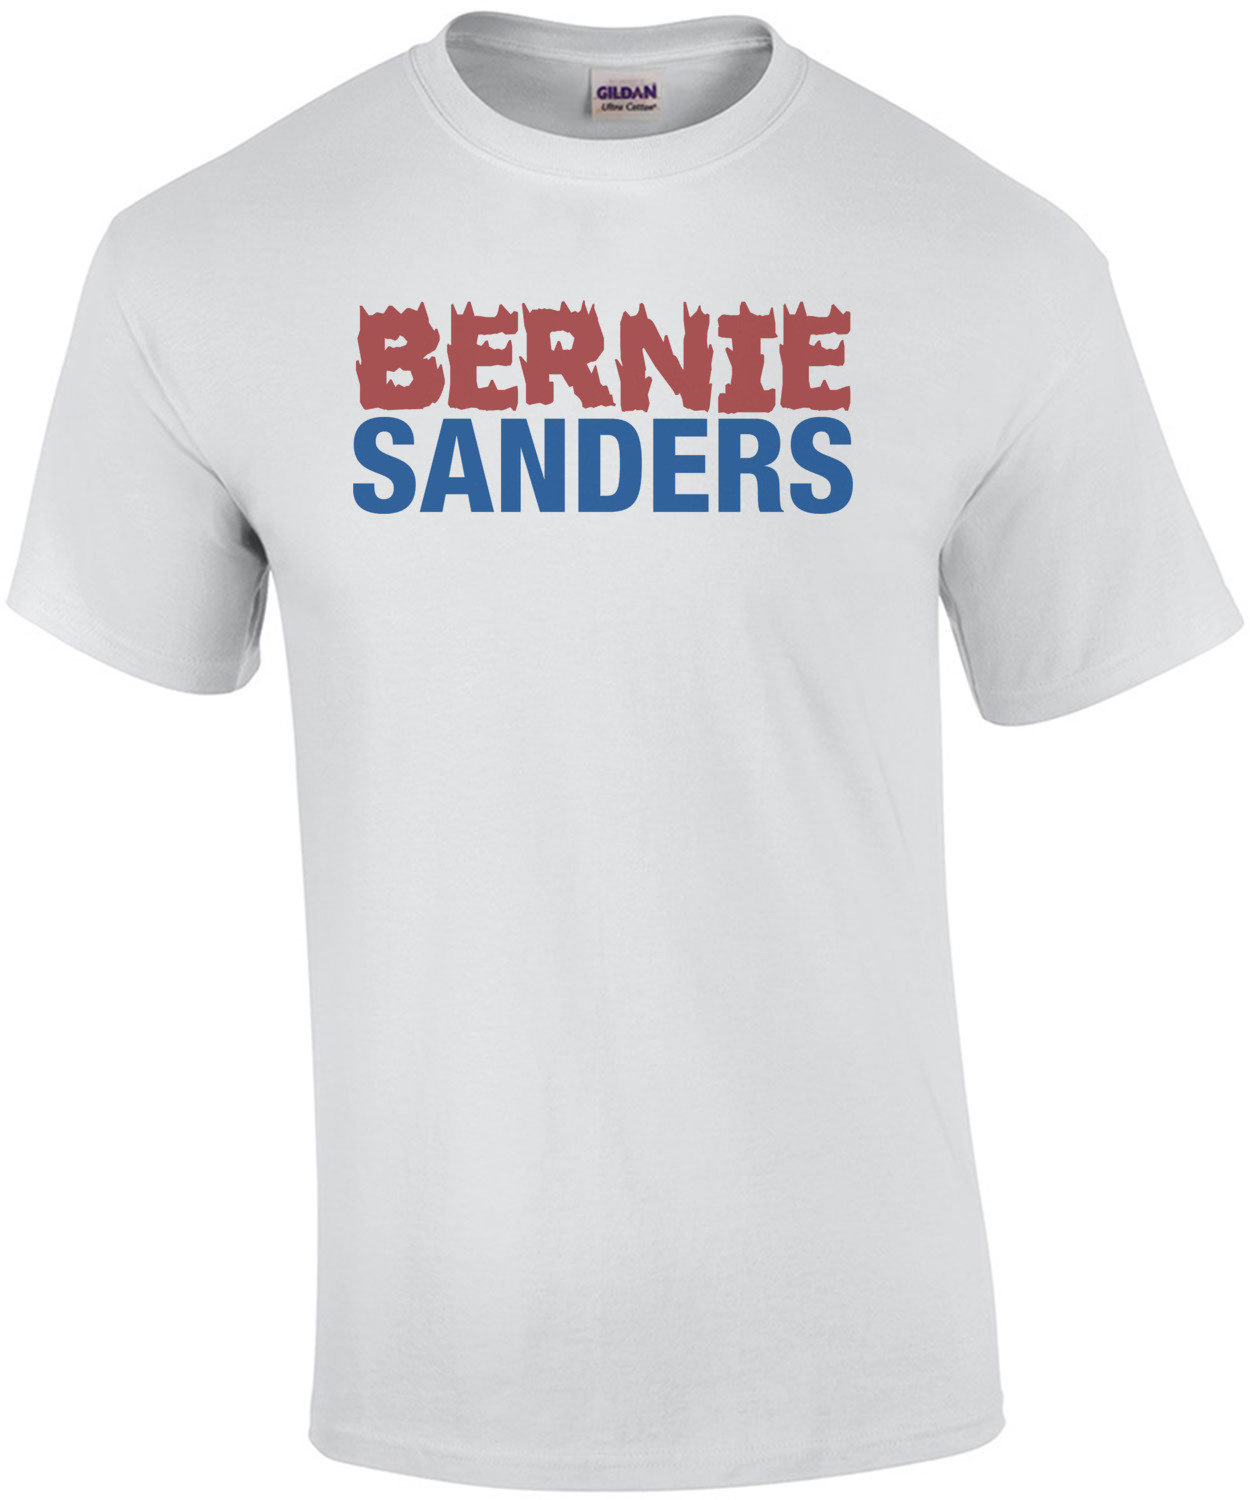 Bernie Sanders Flaming T-Shirt